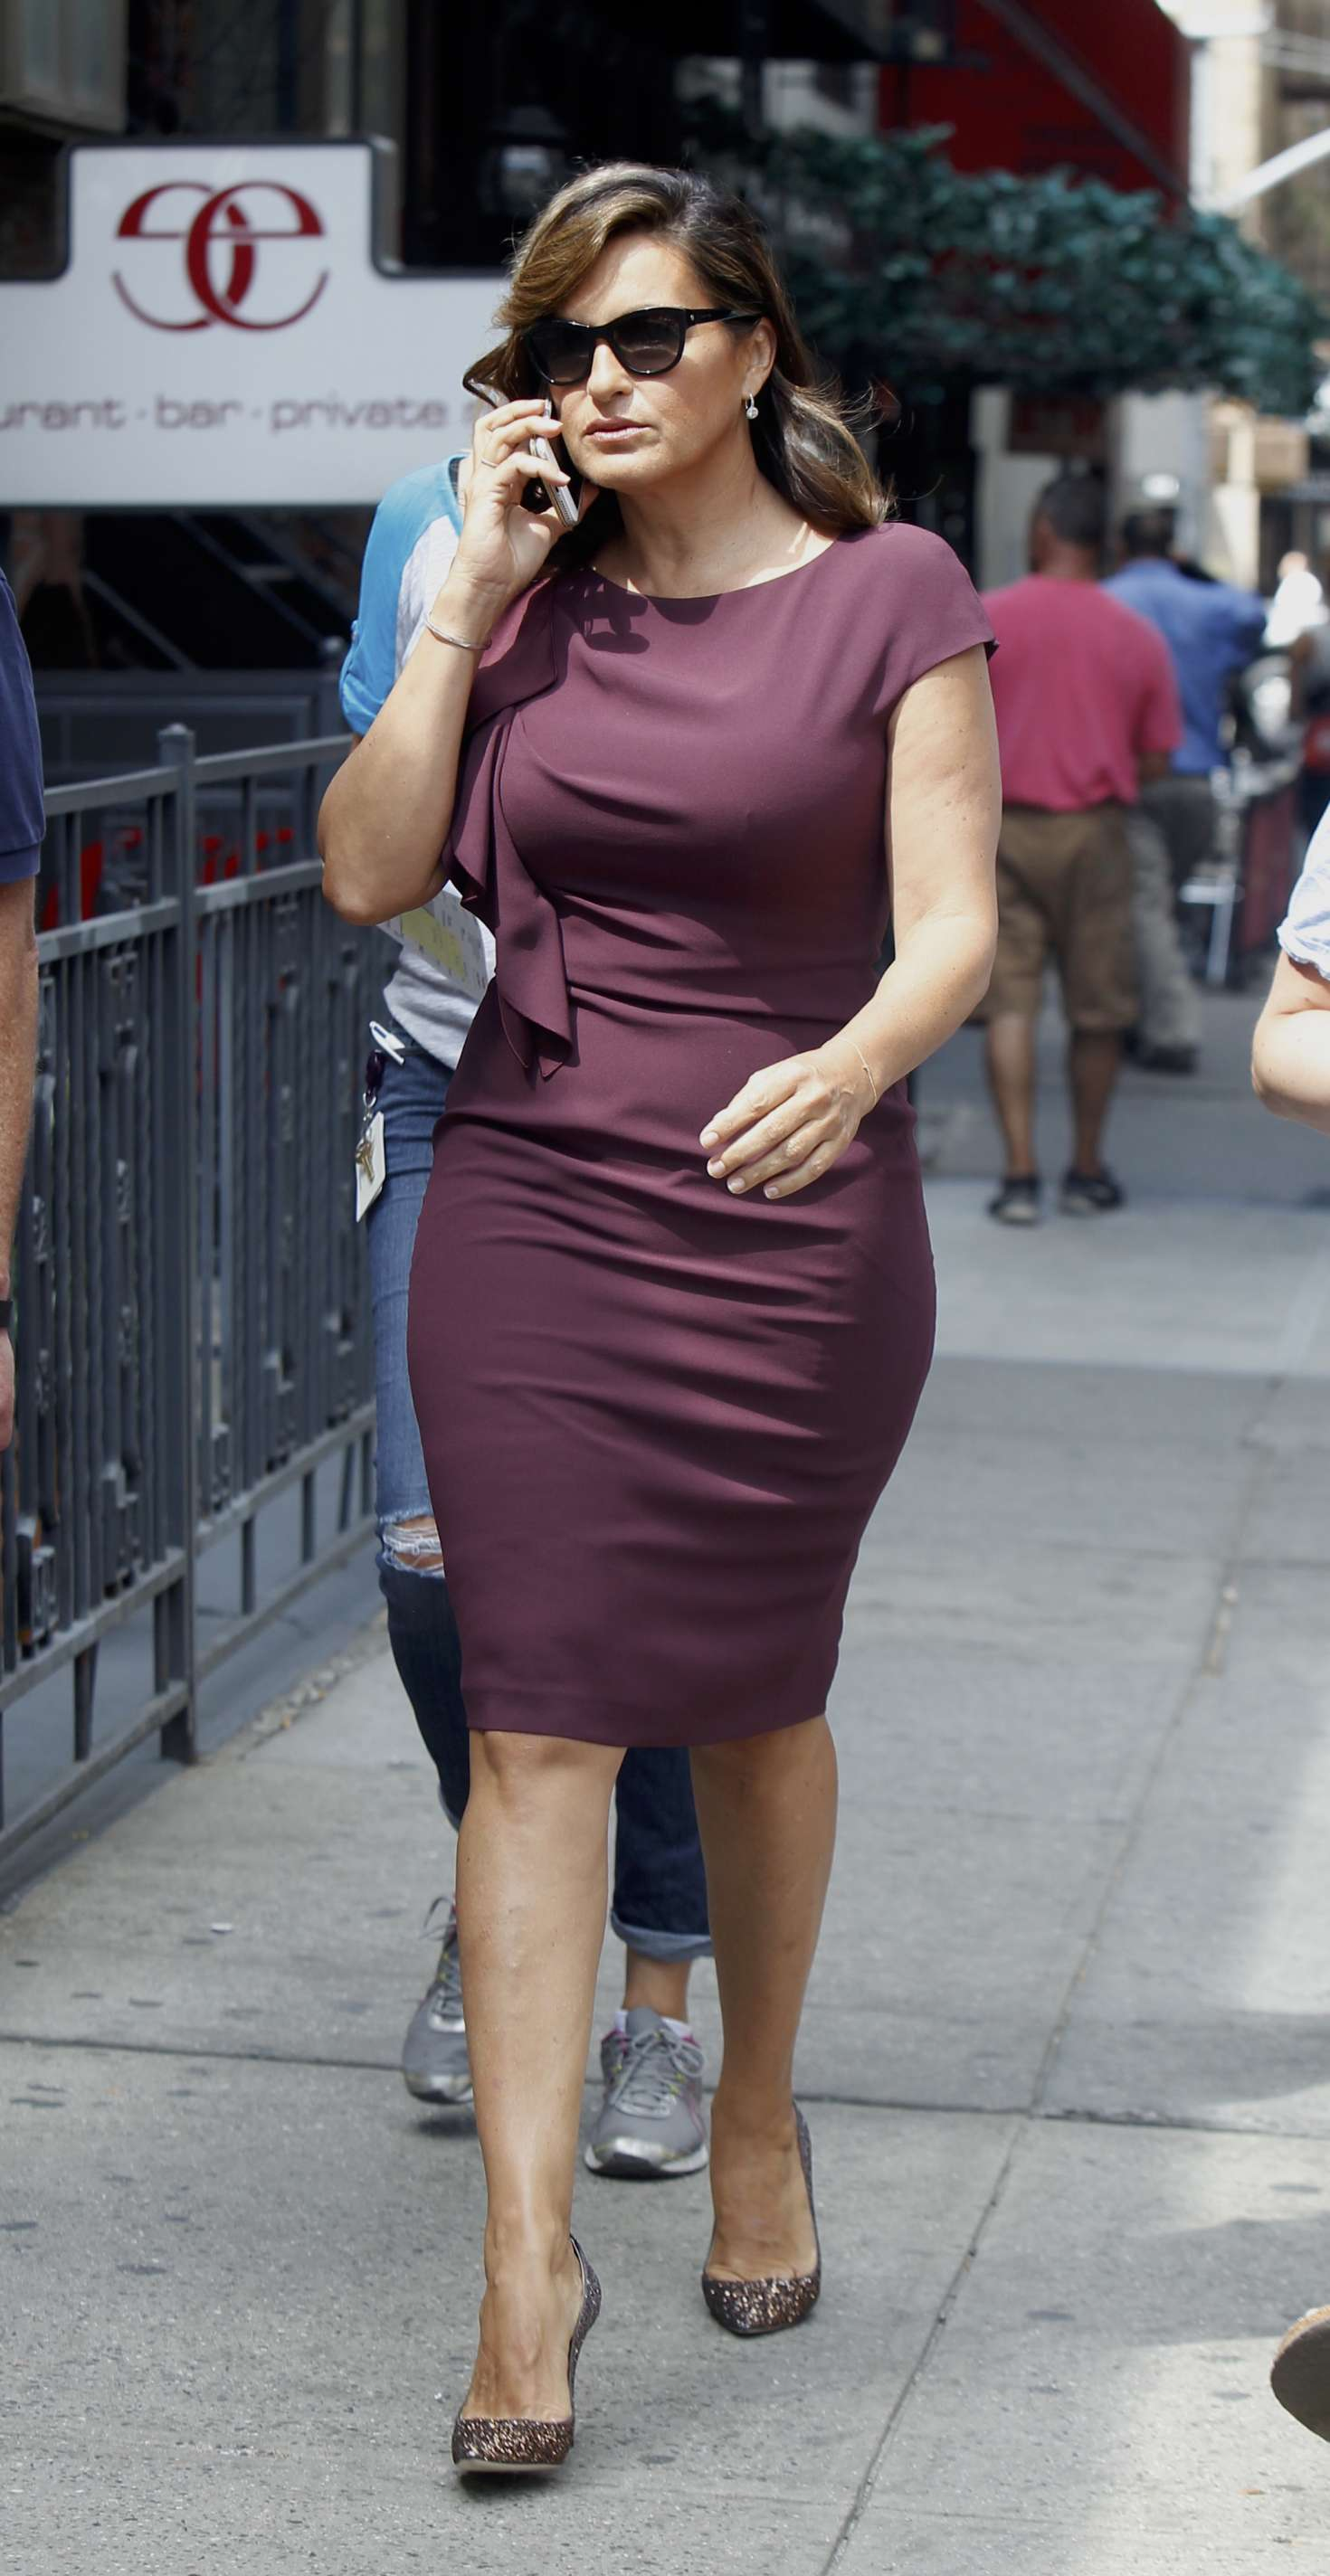 Mariska Hargitay At Law And Order Set 03 Gotceleb